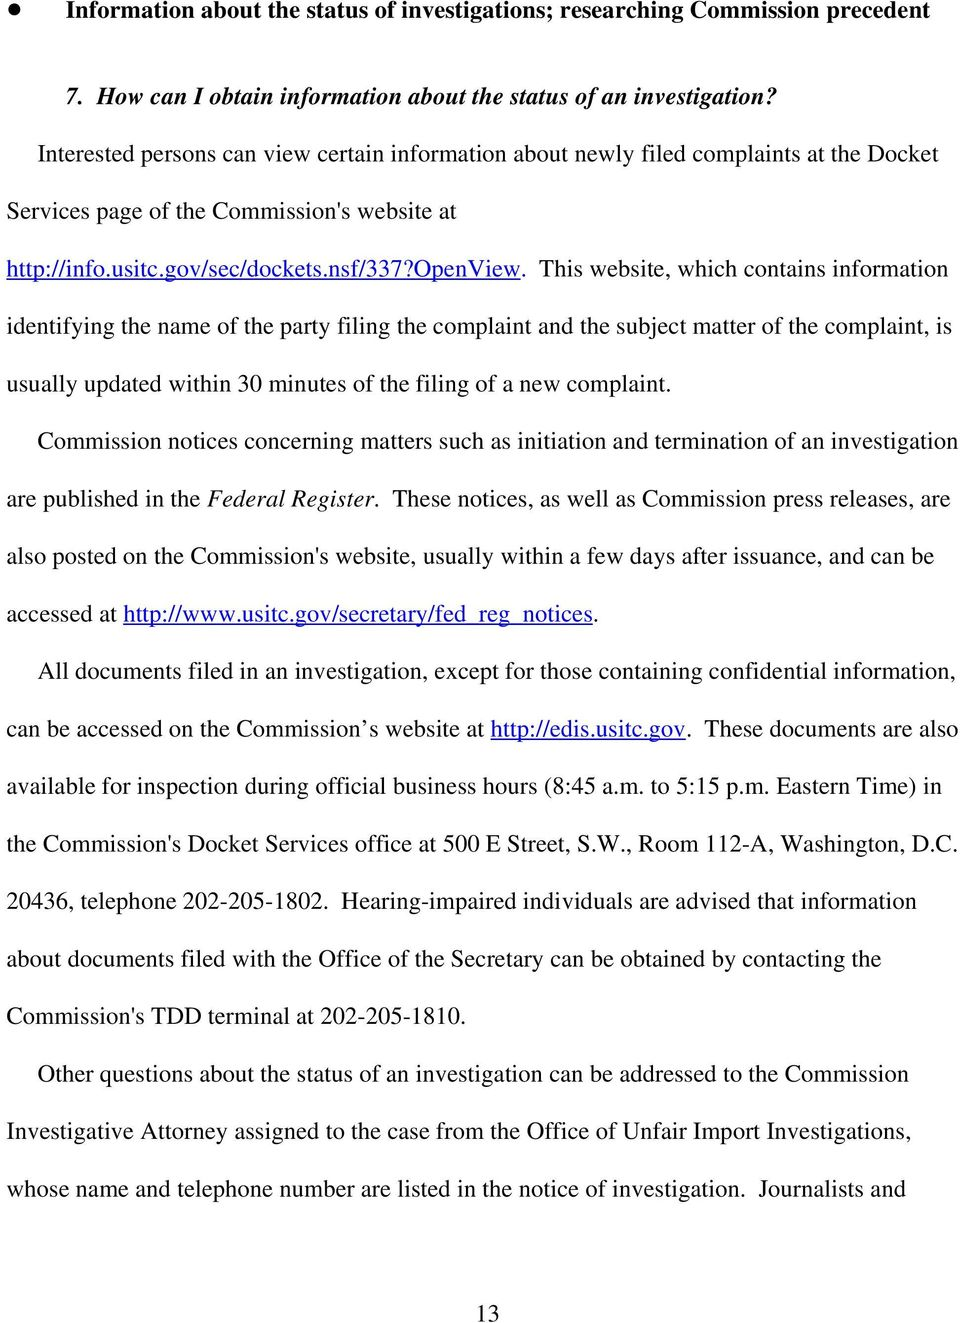 This website, which contains information identifying the name of the party filing the complaint and the subject matter of the complaint, is usually updated within 30 minutes of the filing of a new